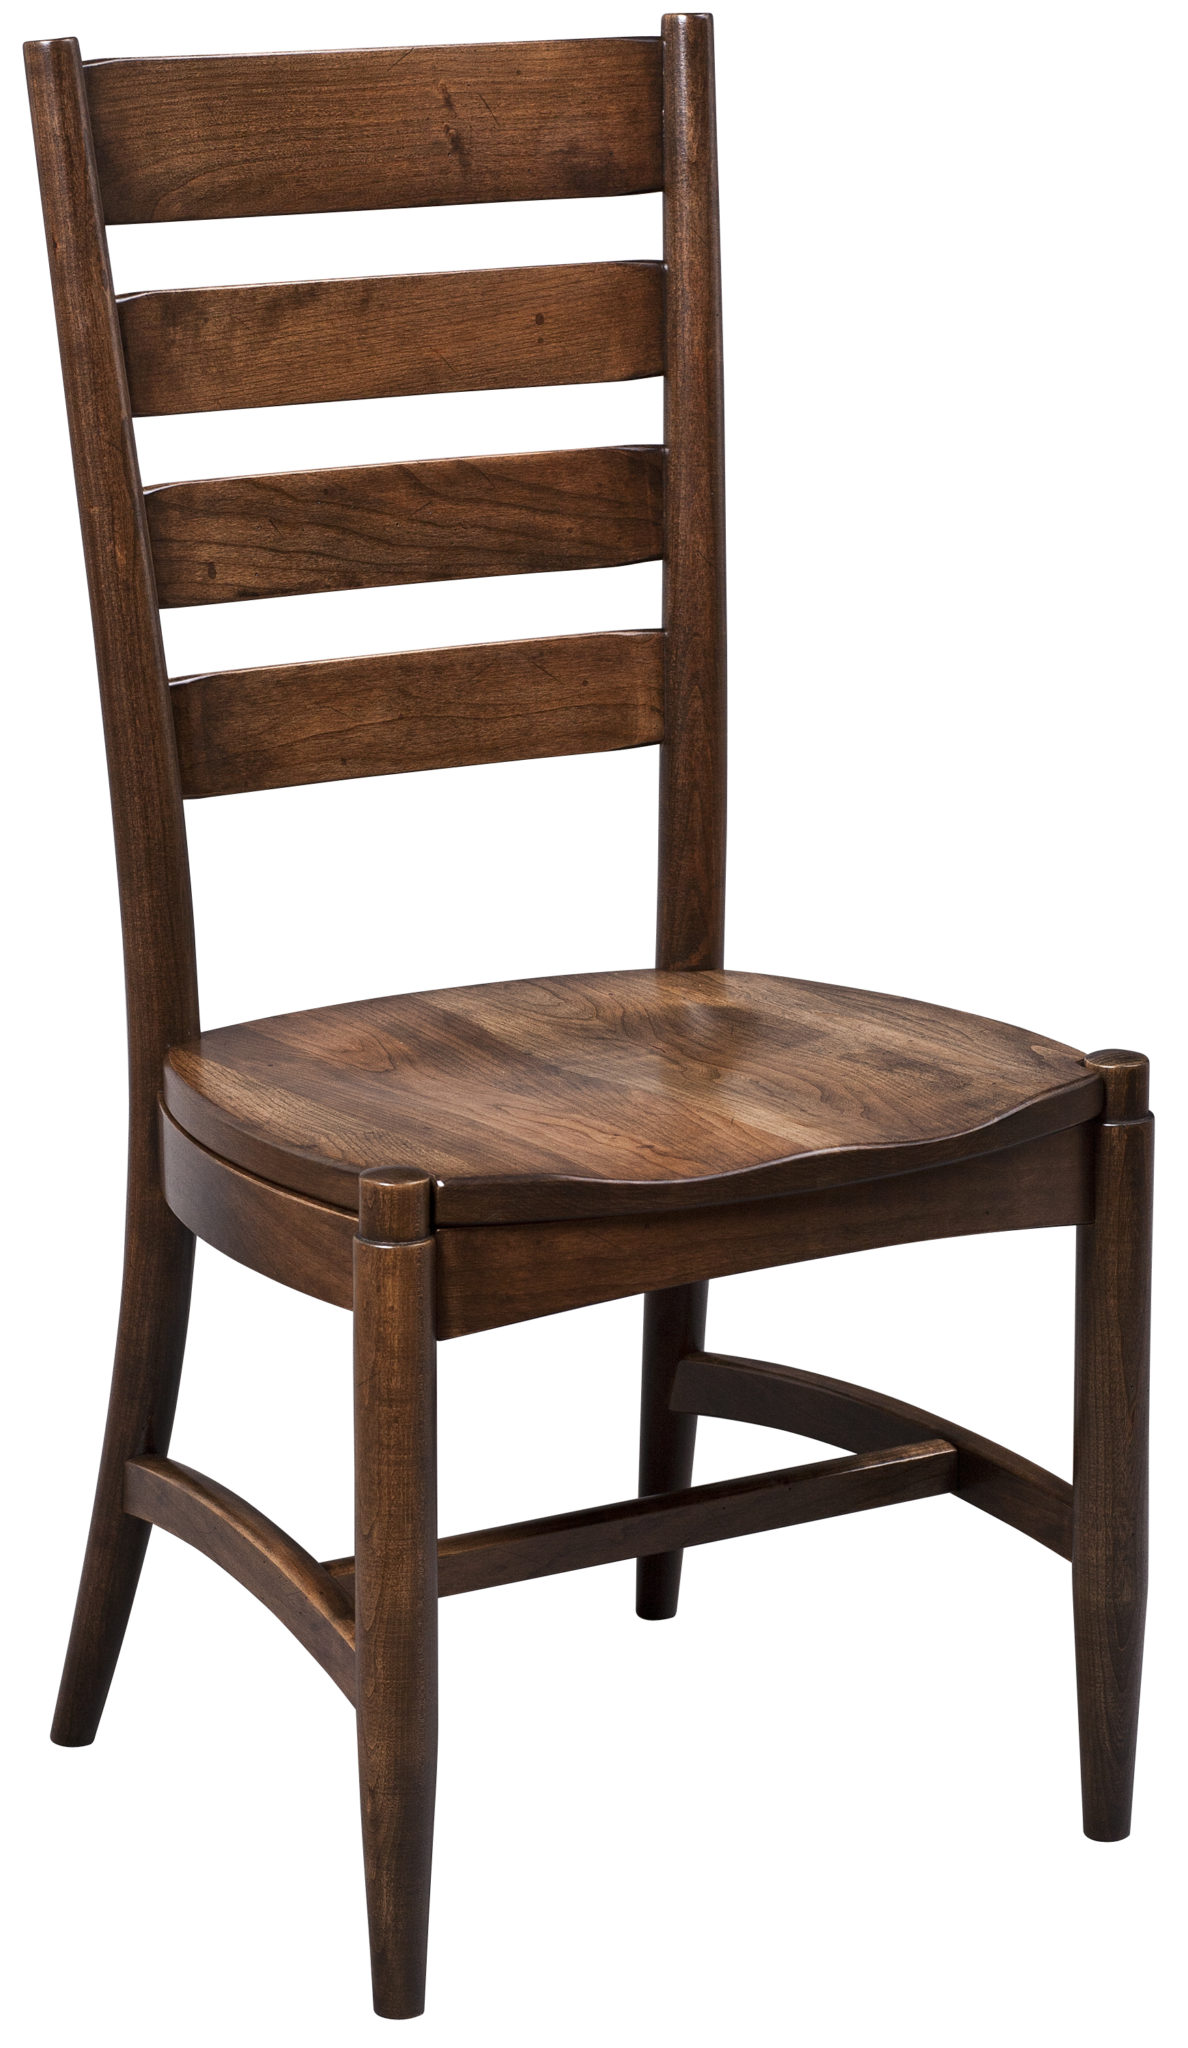 Lyndon Side Chair Image